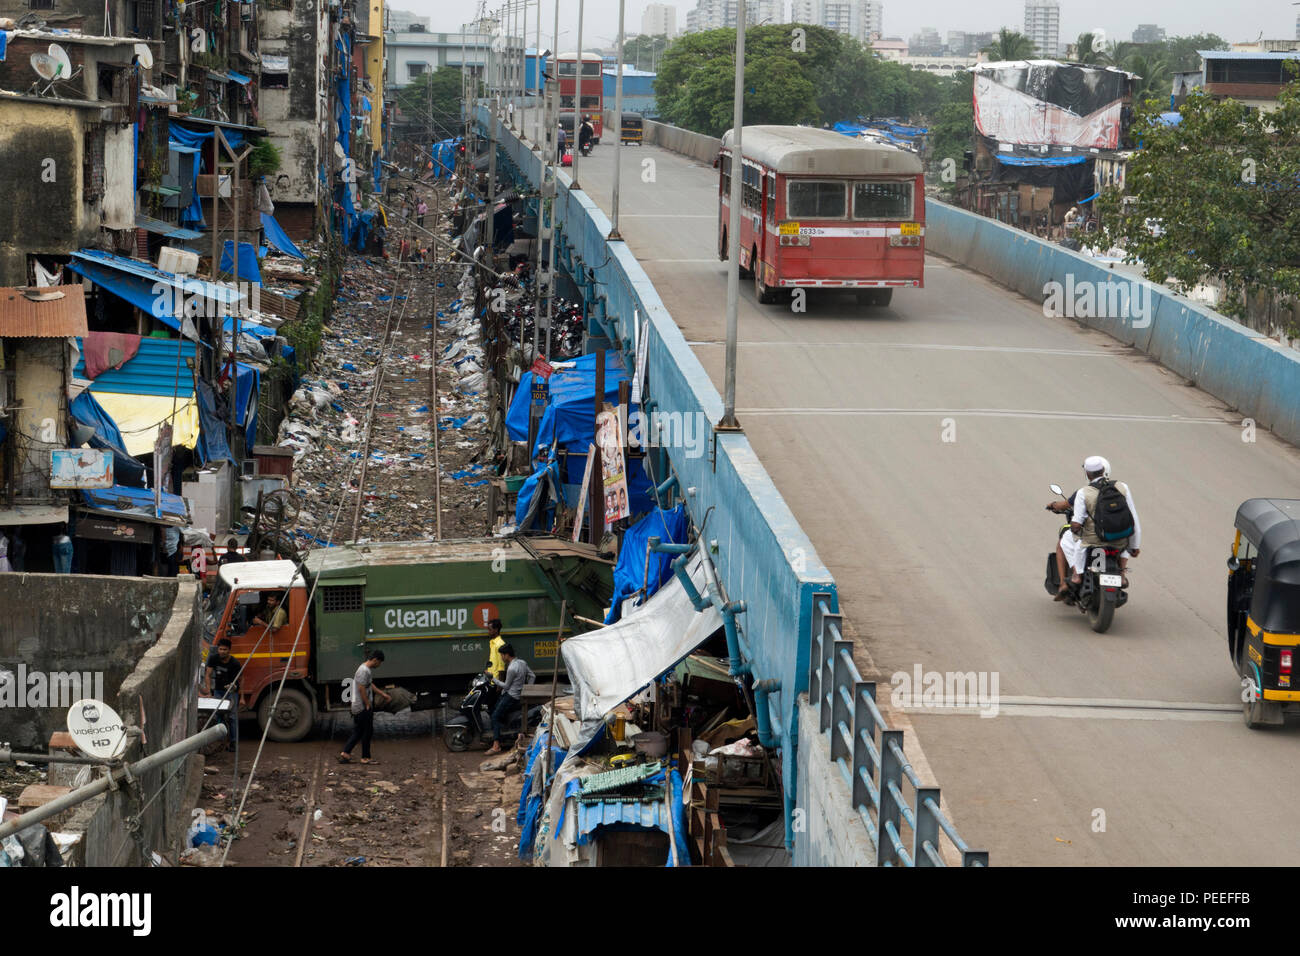 Rubbish truck passes under station road Station road and over train tracks covered in plastic trash at Bandra, Mumbai, India - Stock Image